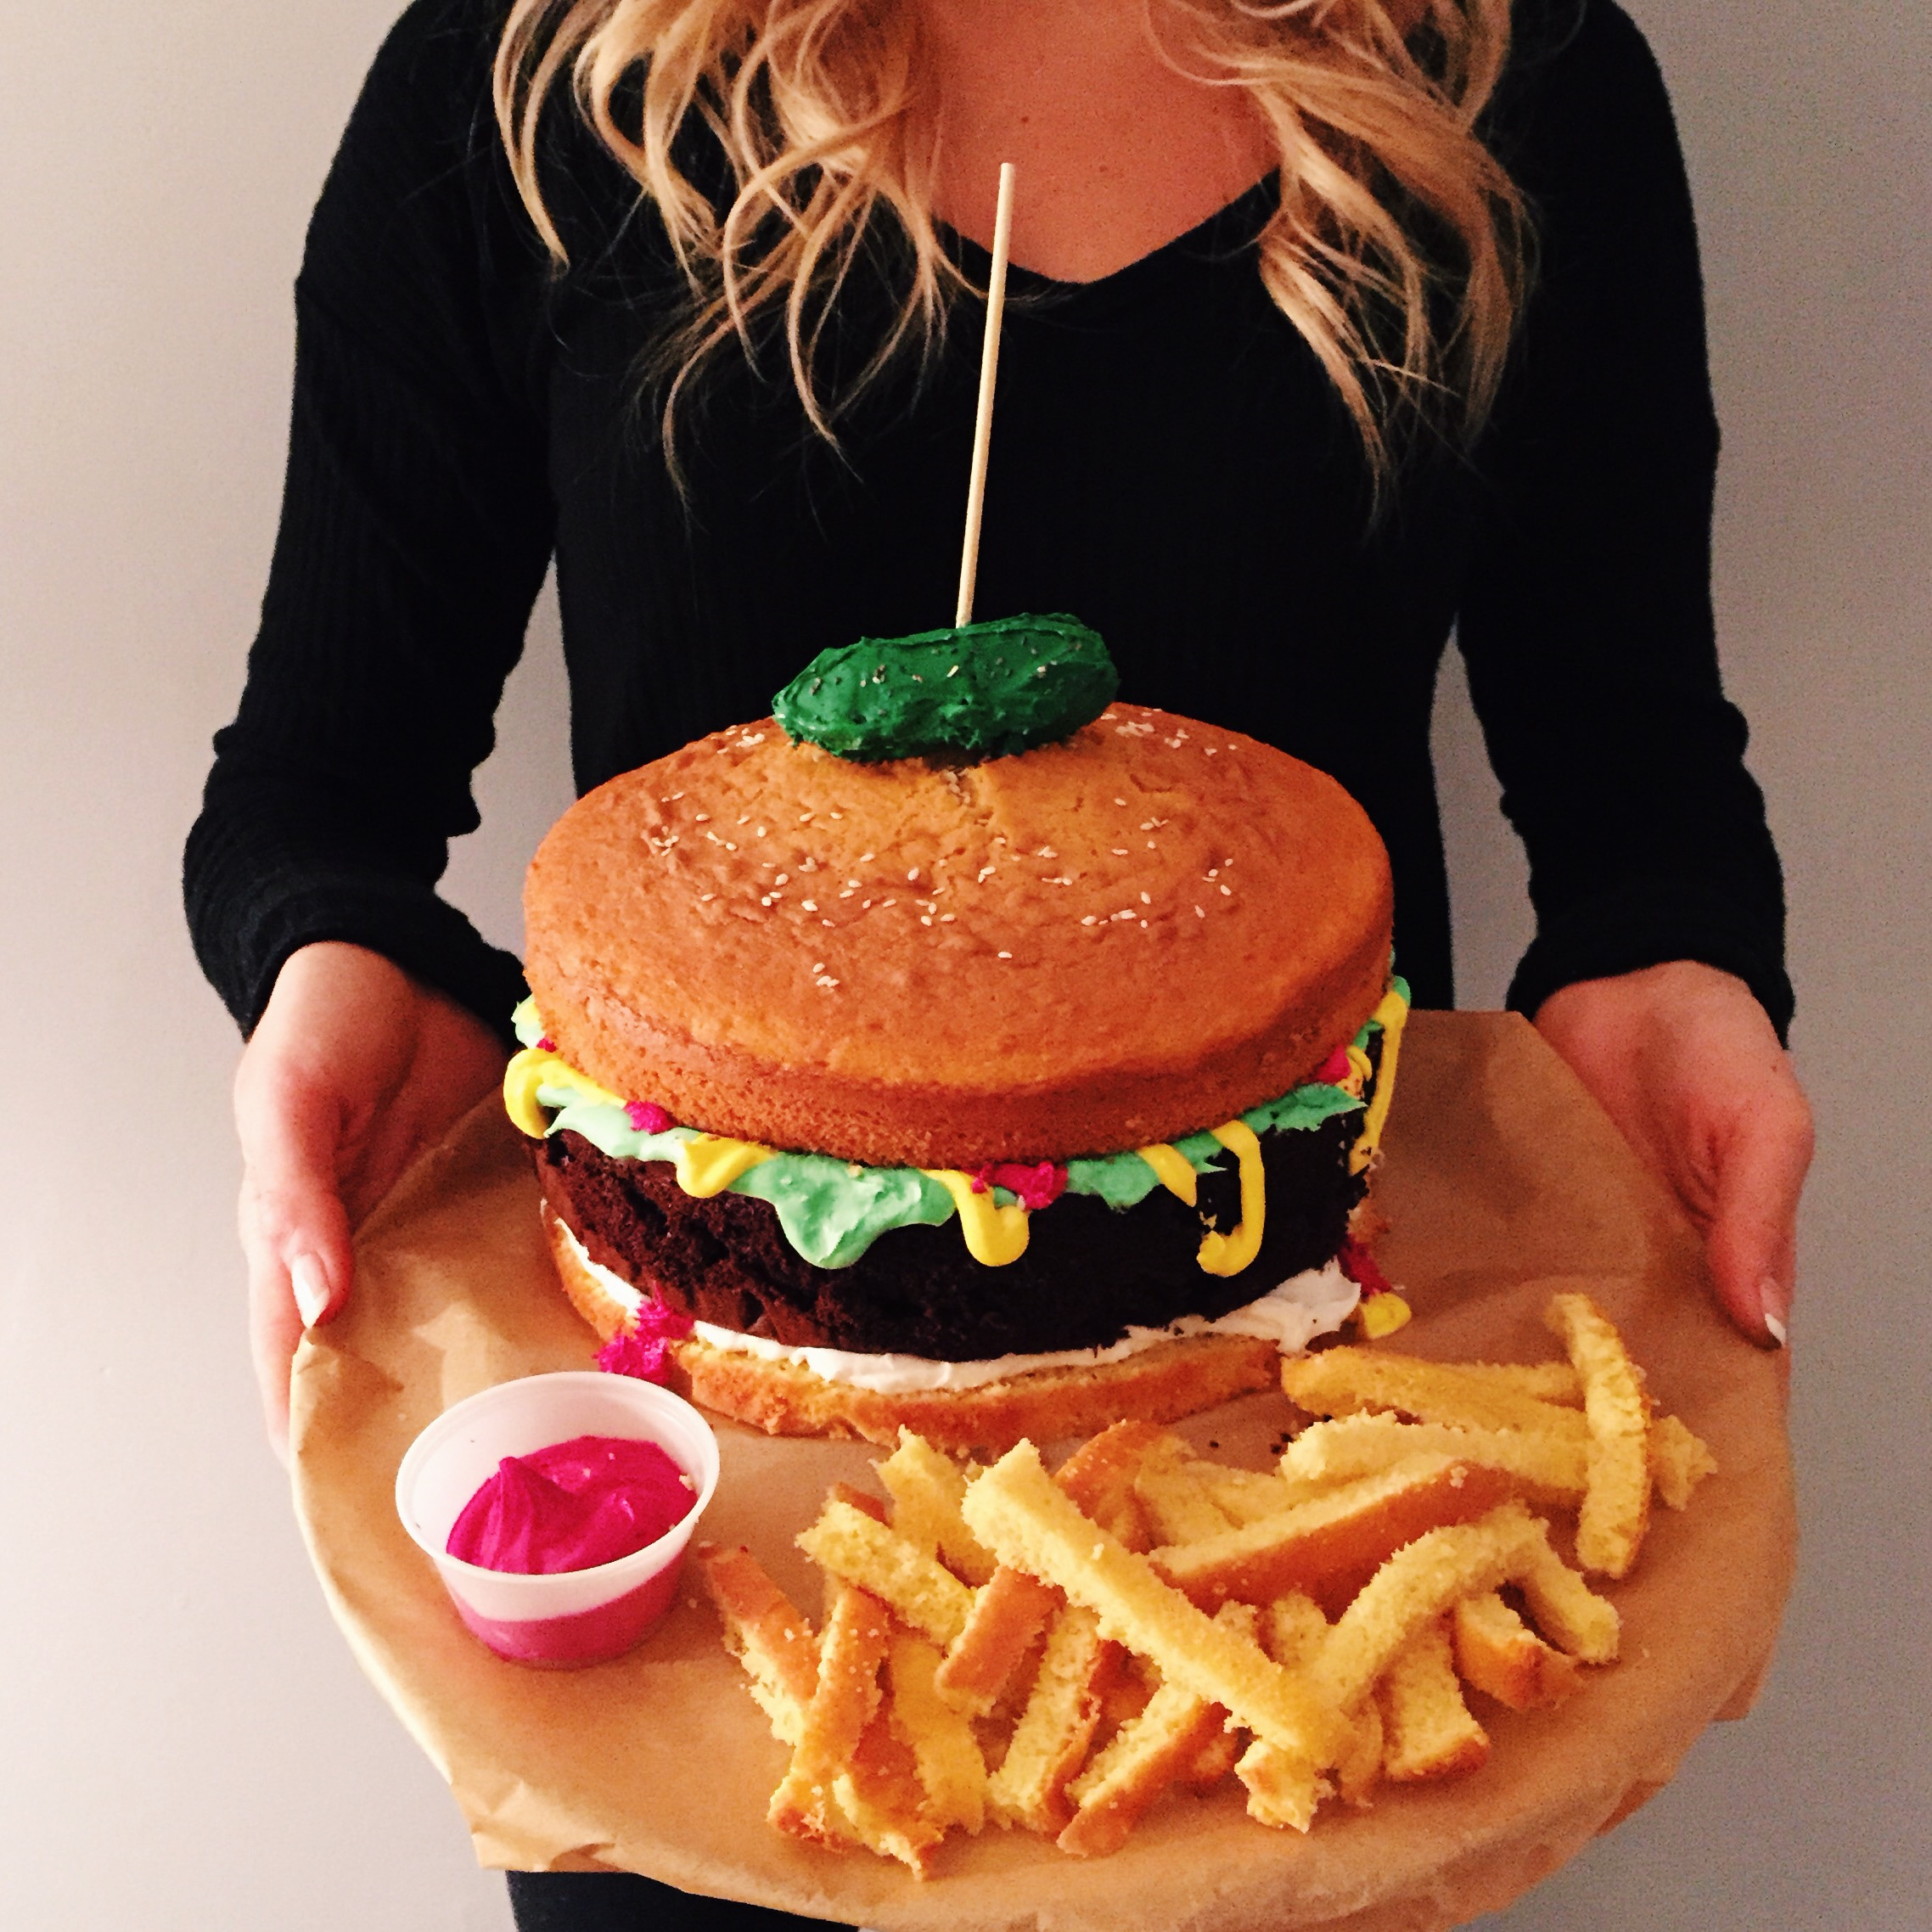 ... Birthday Burger cake I made for my best friends 23rd birthday today